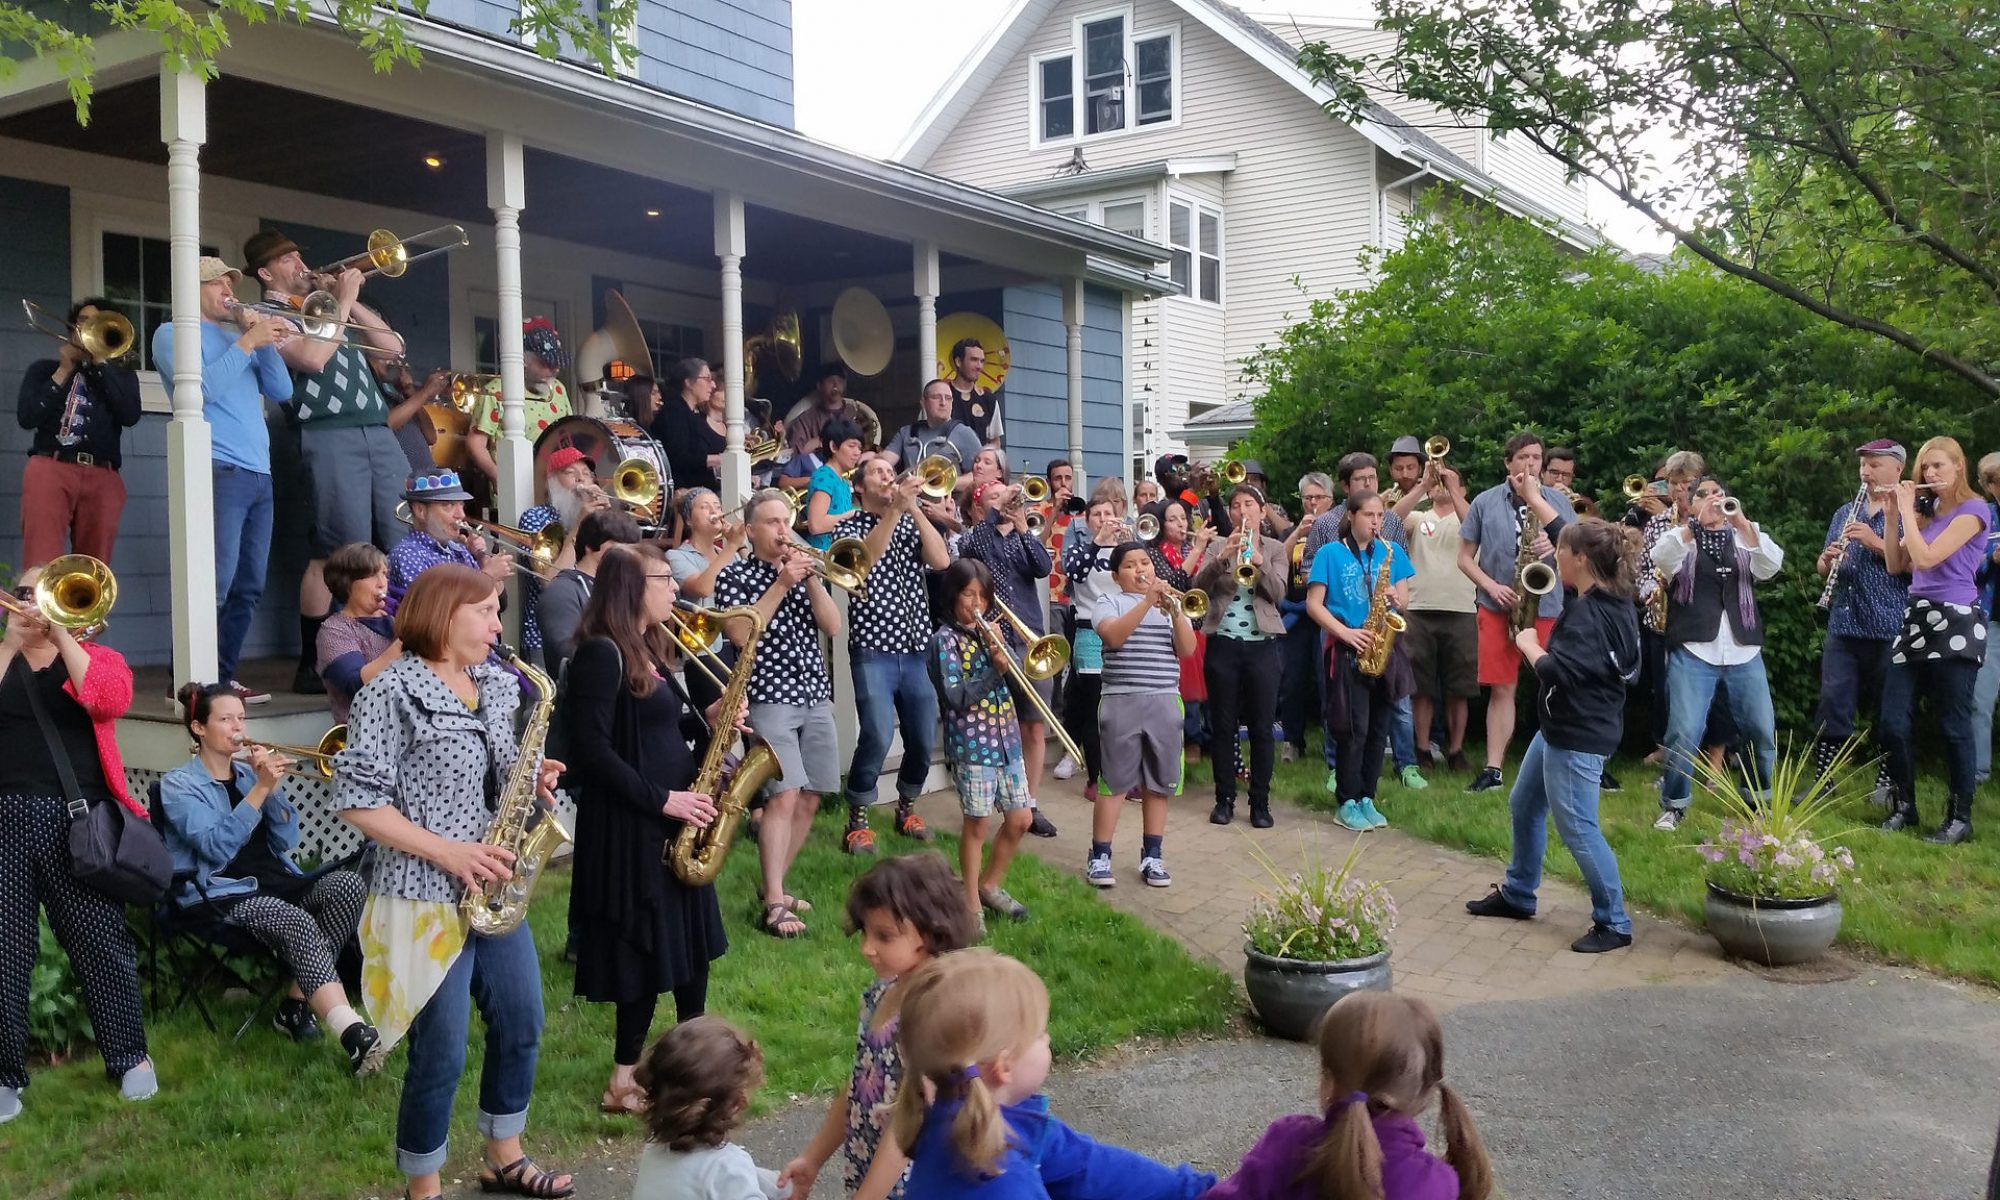 Arlington Porchfest: June 8, 2019